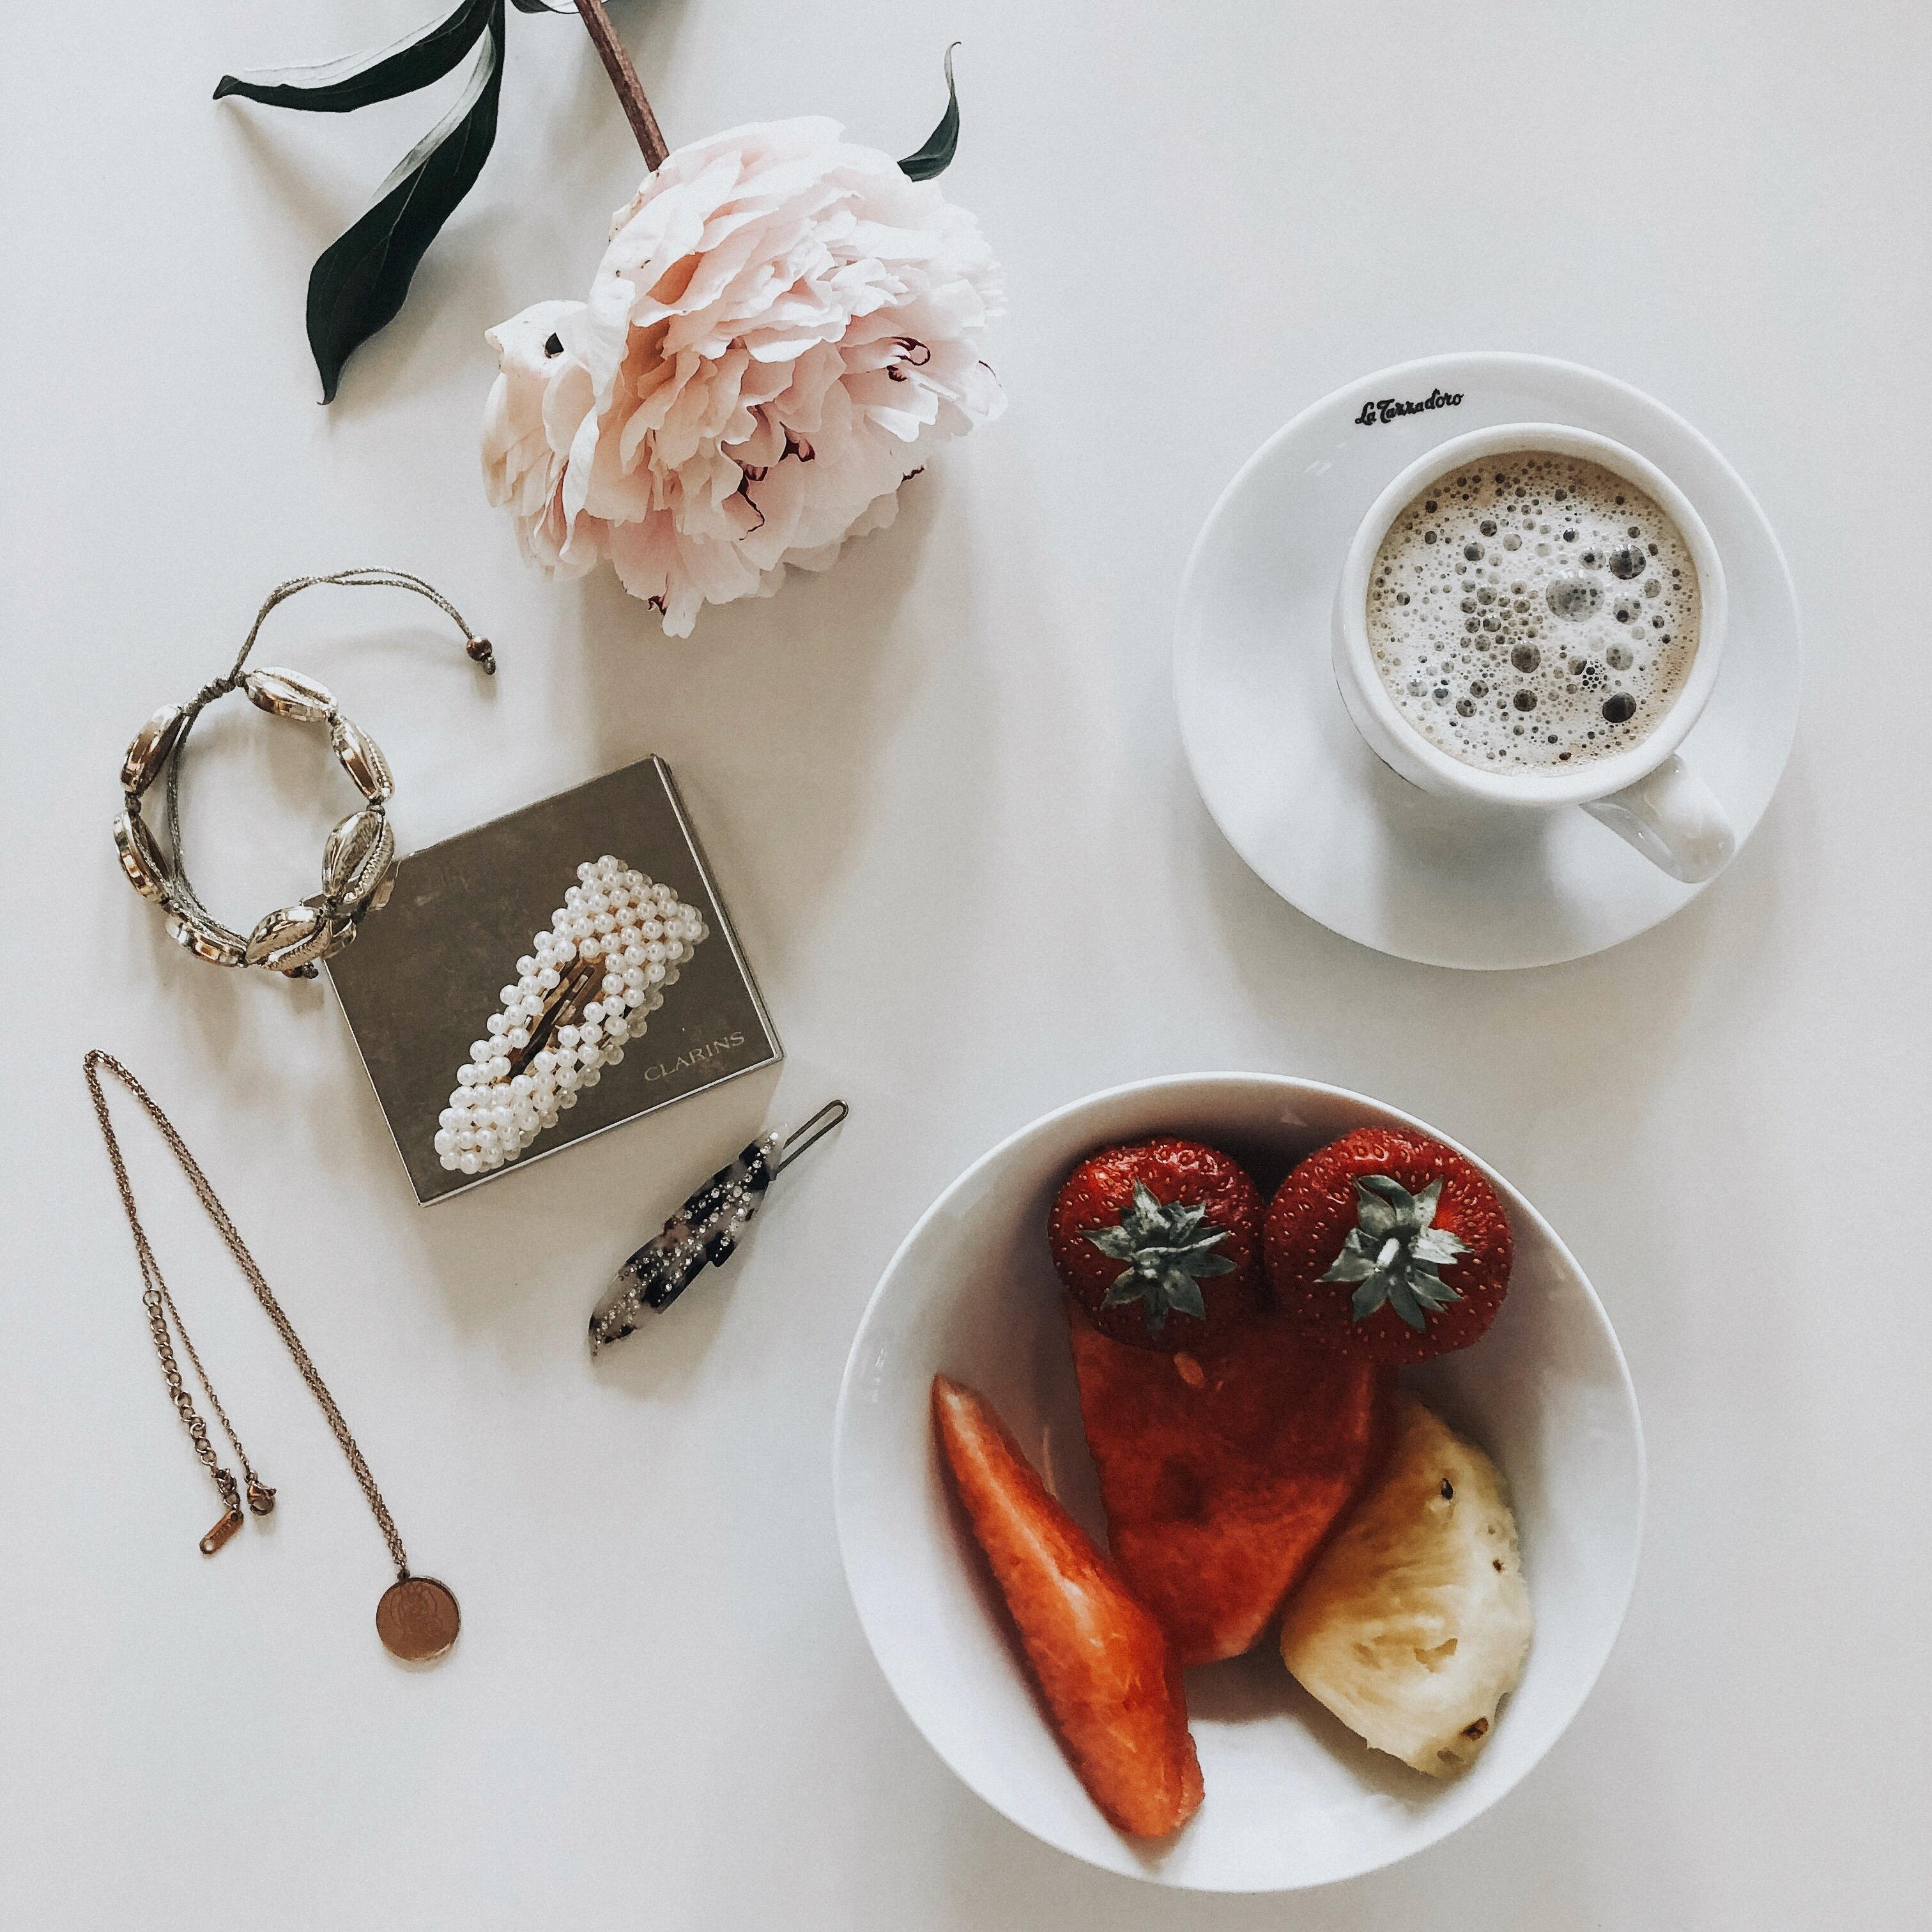 summeressentials #details #coffeelover #onmytable #flatlay #hairclips #jewellery #vonoben #summer #fashioncrush